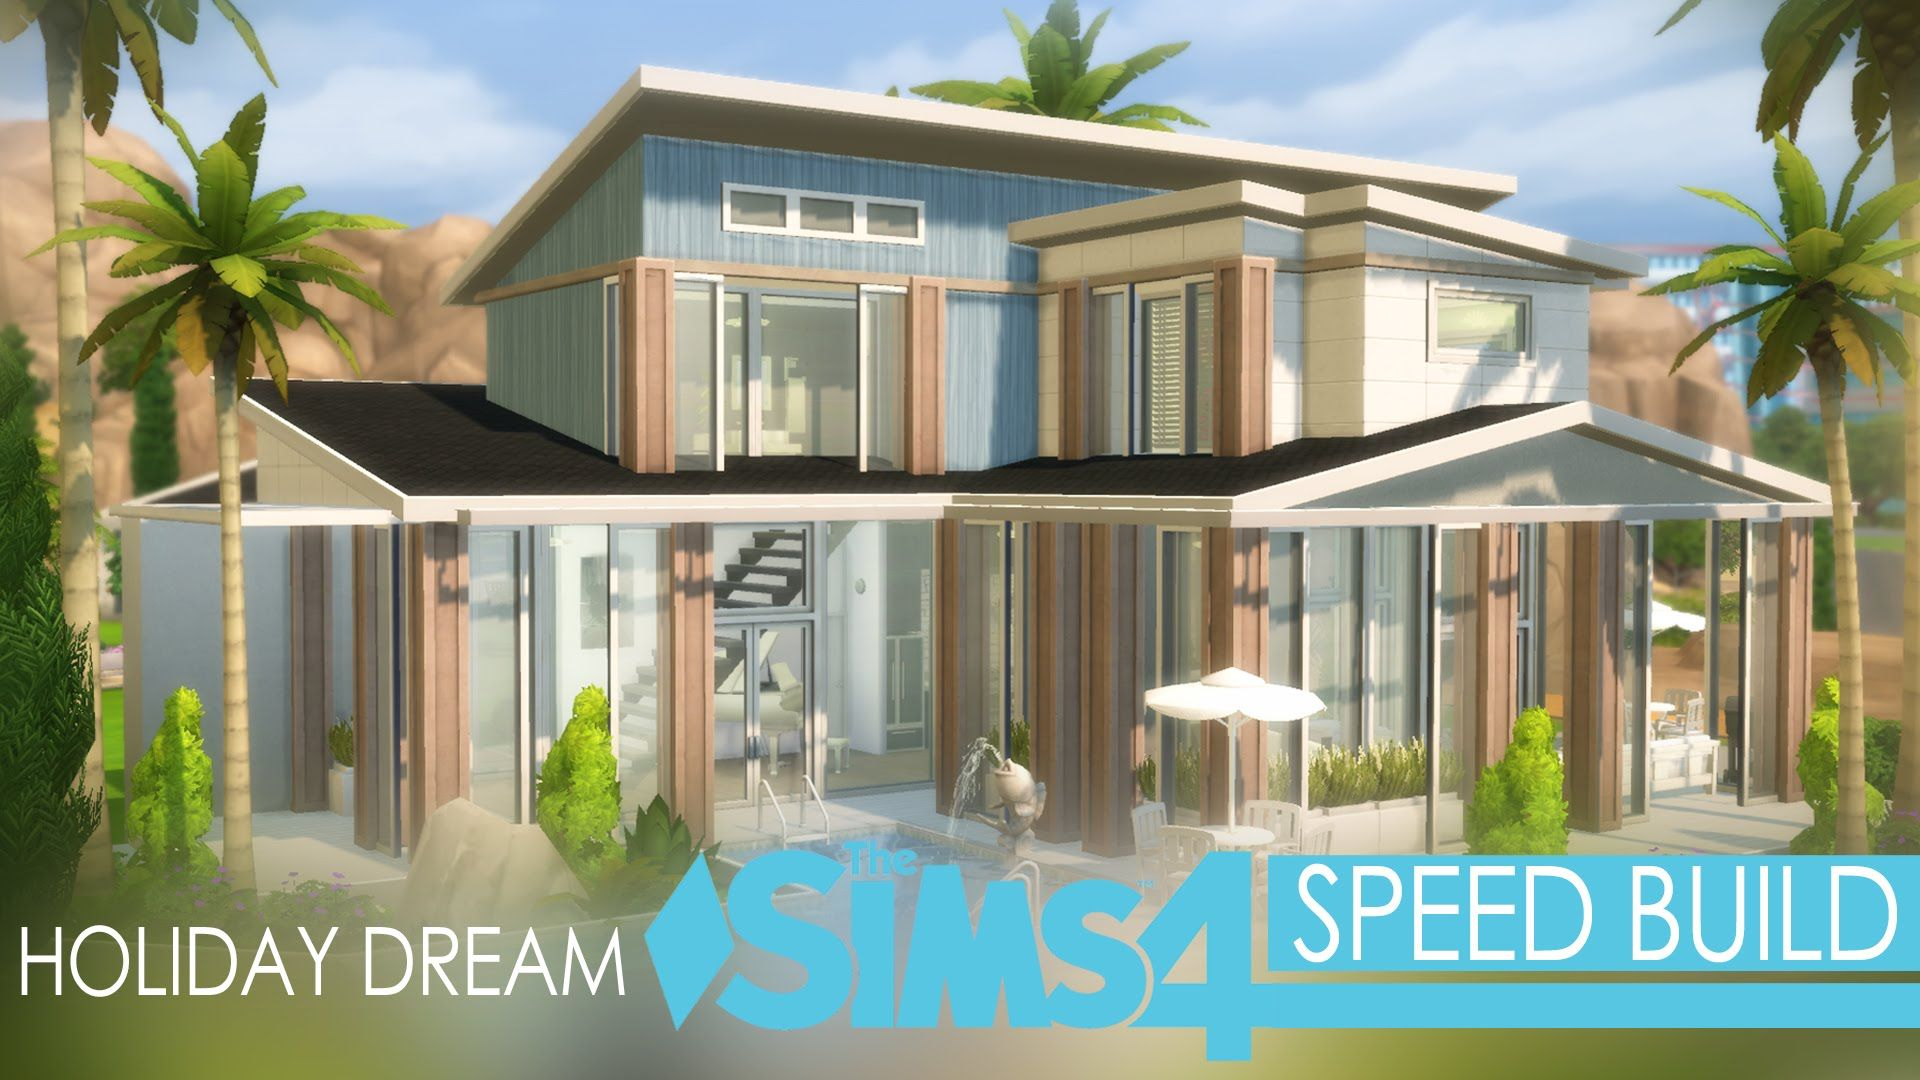 The Sims 4 - Speed Build - Holiday Dream